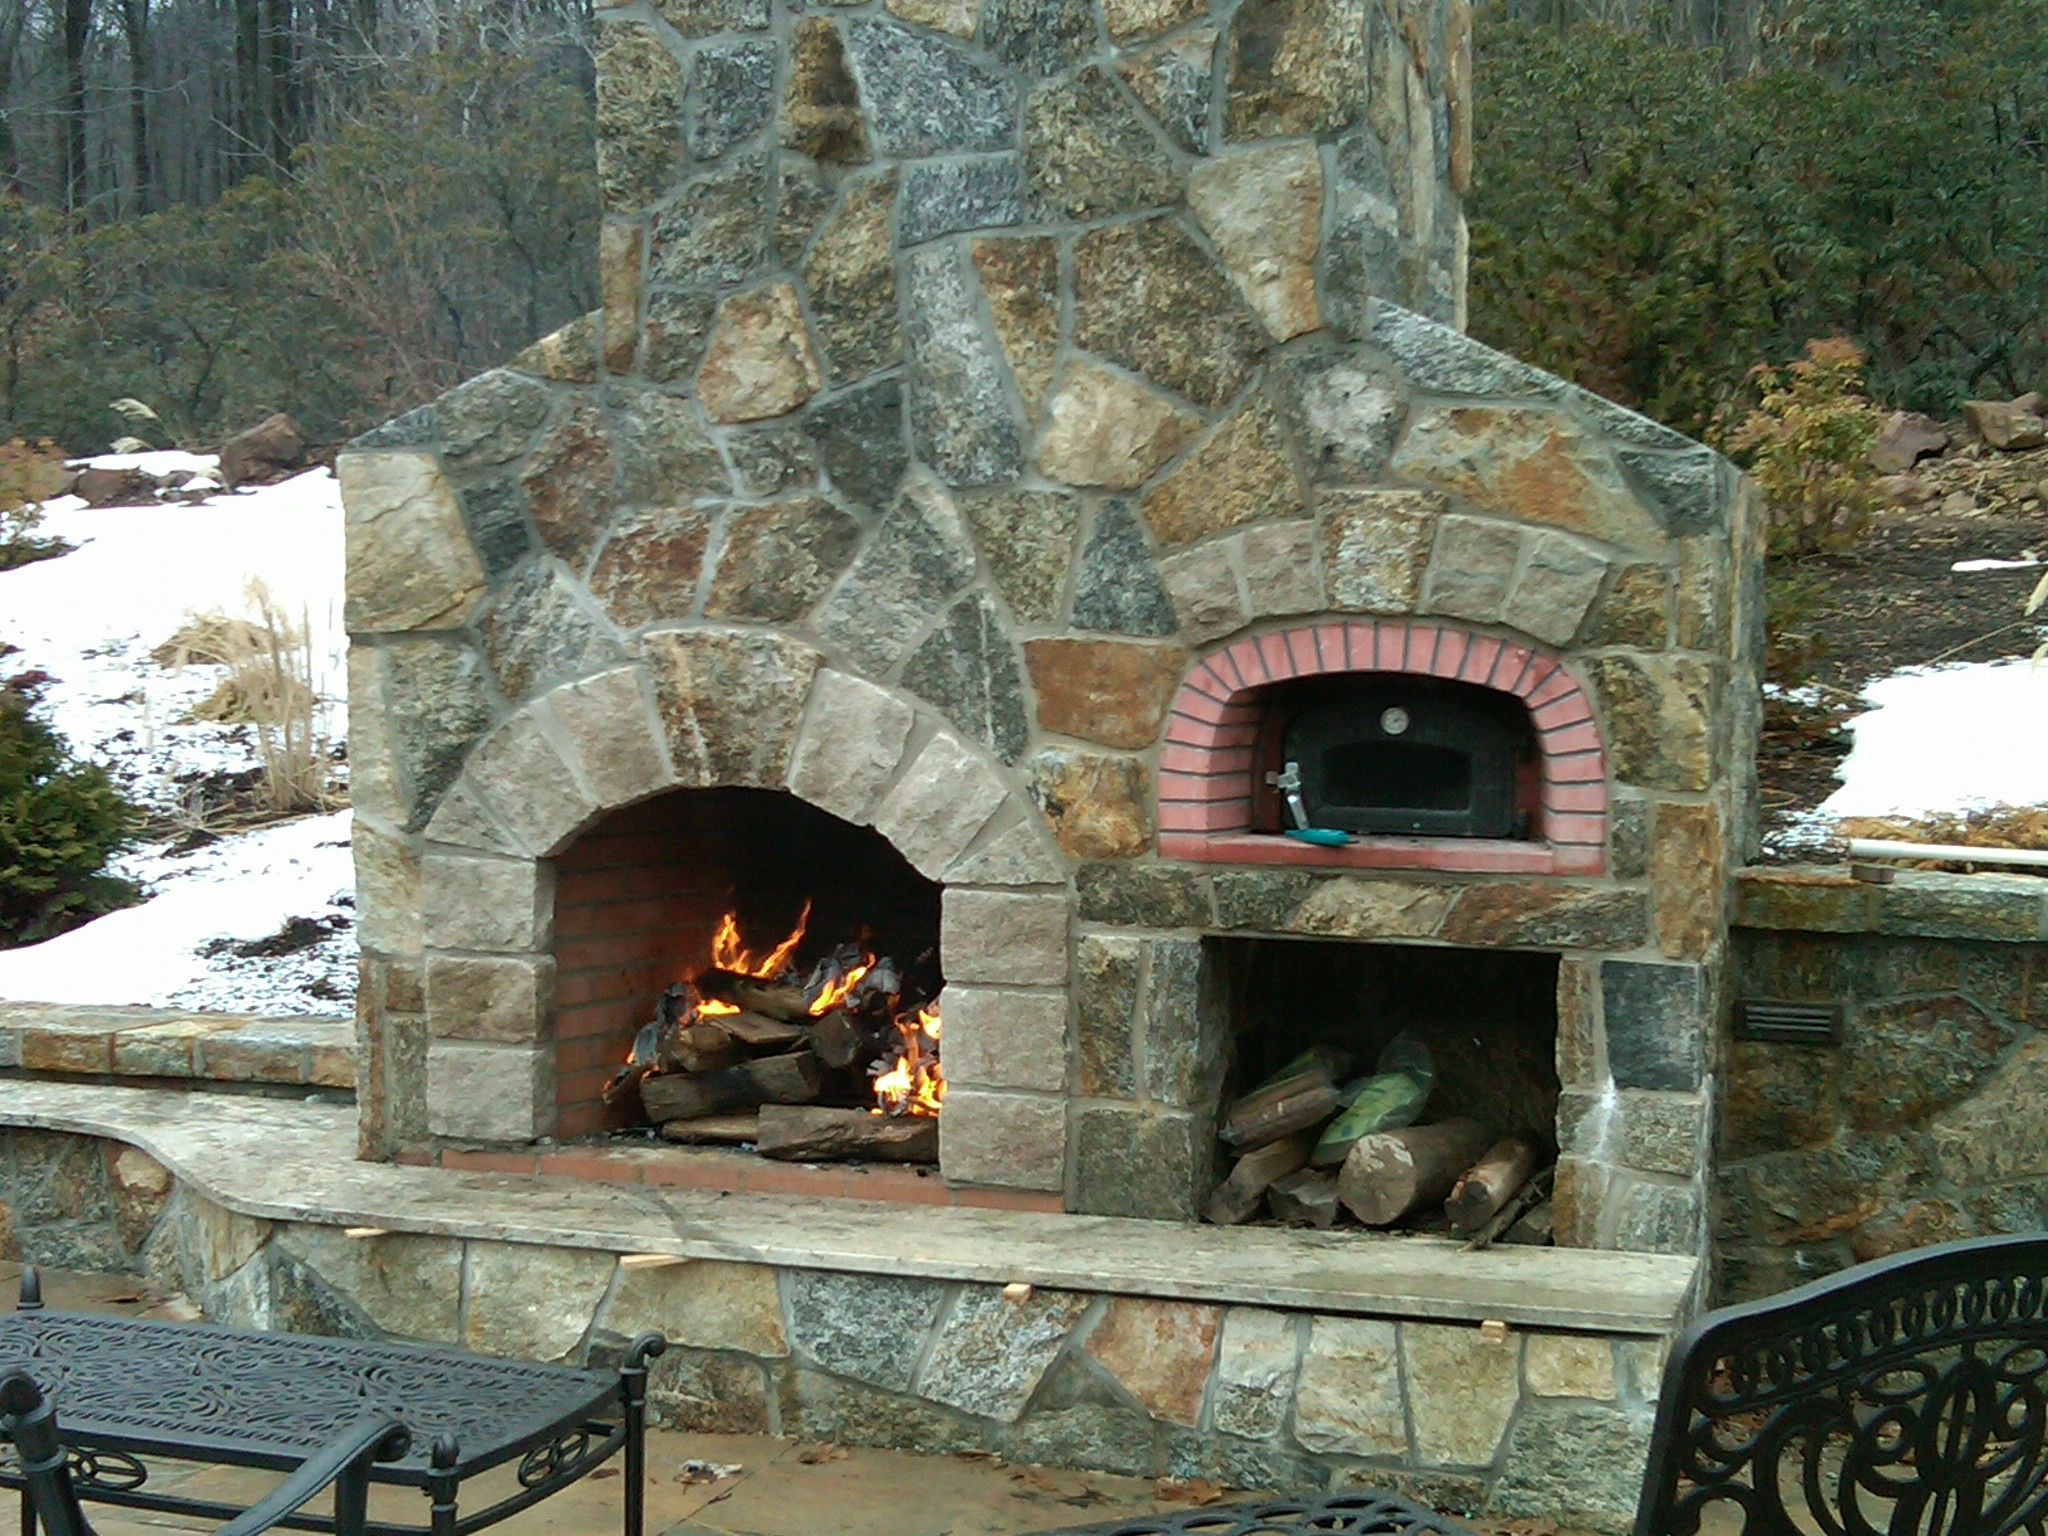 Of Outdoor Fireplaces Outdoor Fireplaces Are The Best We Build The Preferred Lifestyle